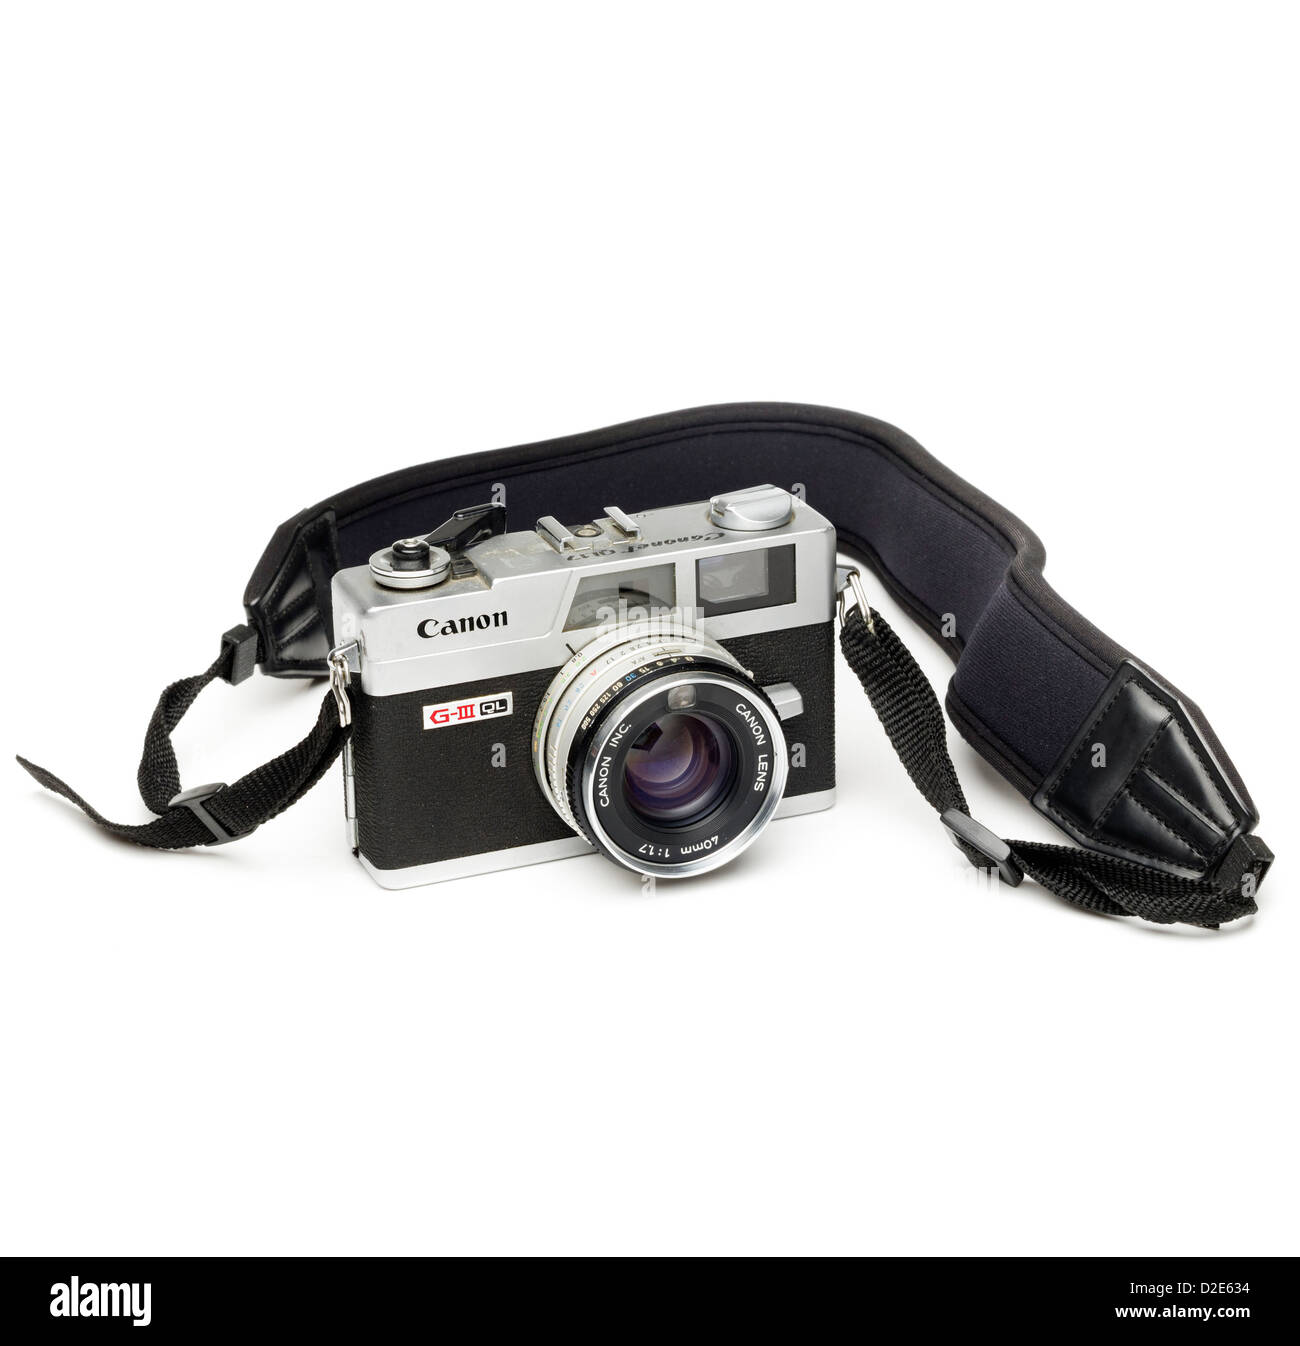 Canon Canonet G-III QL rangefinder film camera with strap isolated on white background Stock Photo